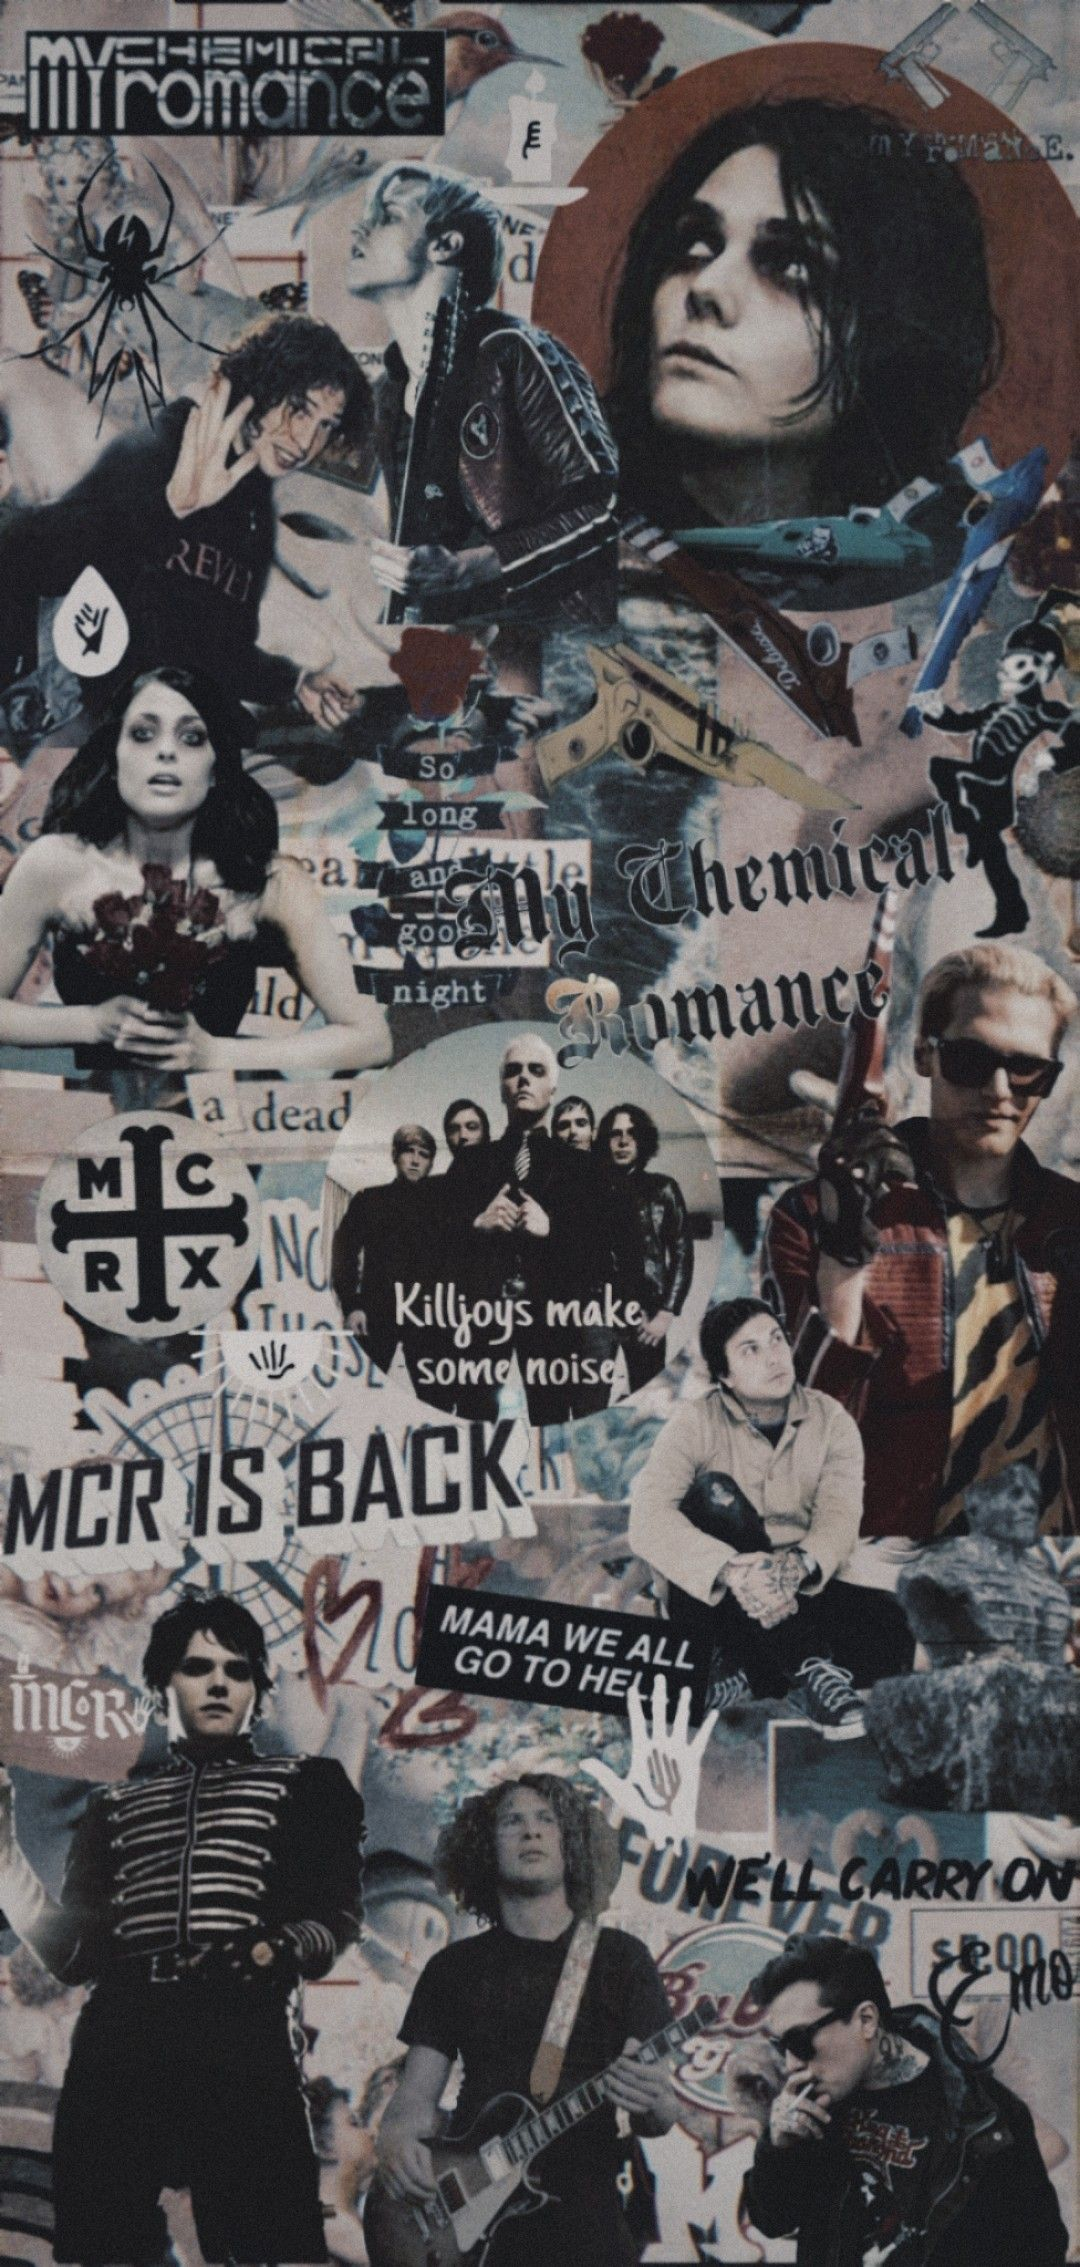 Wallpaper Mcr Aesthetic My Chemical Romance Gerard Way Mikey Way Frank Iero Ray Toro Helena Kil In 2020 My Chemical Romance My Chemical Romance Wallpaper Emo Wallpaper